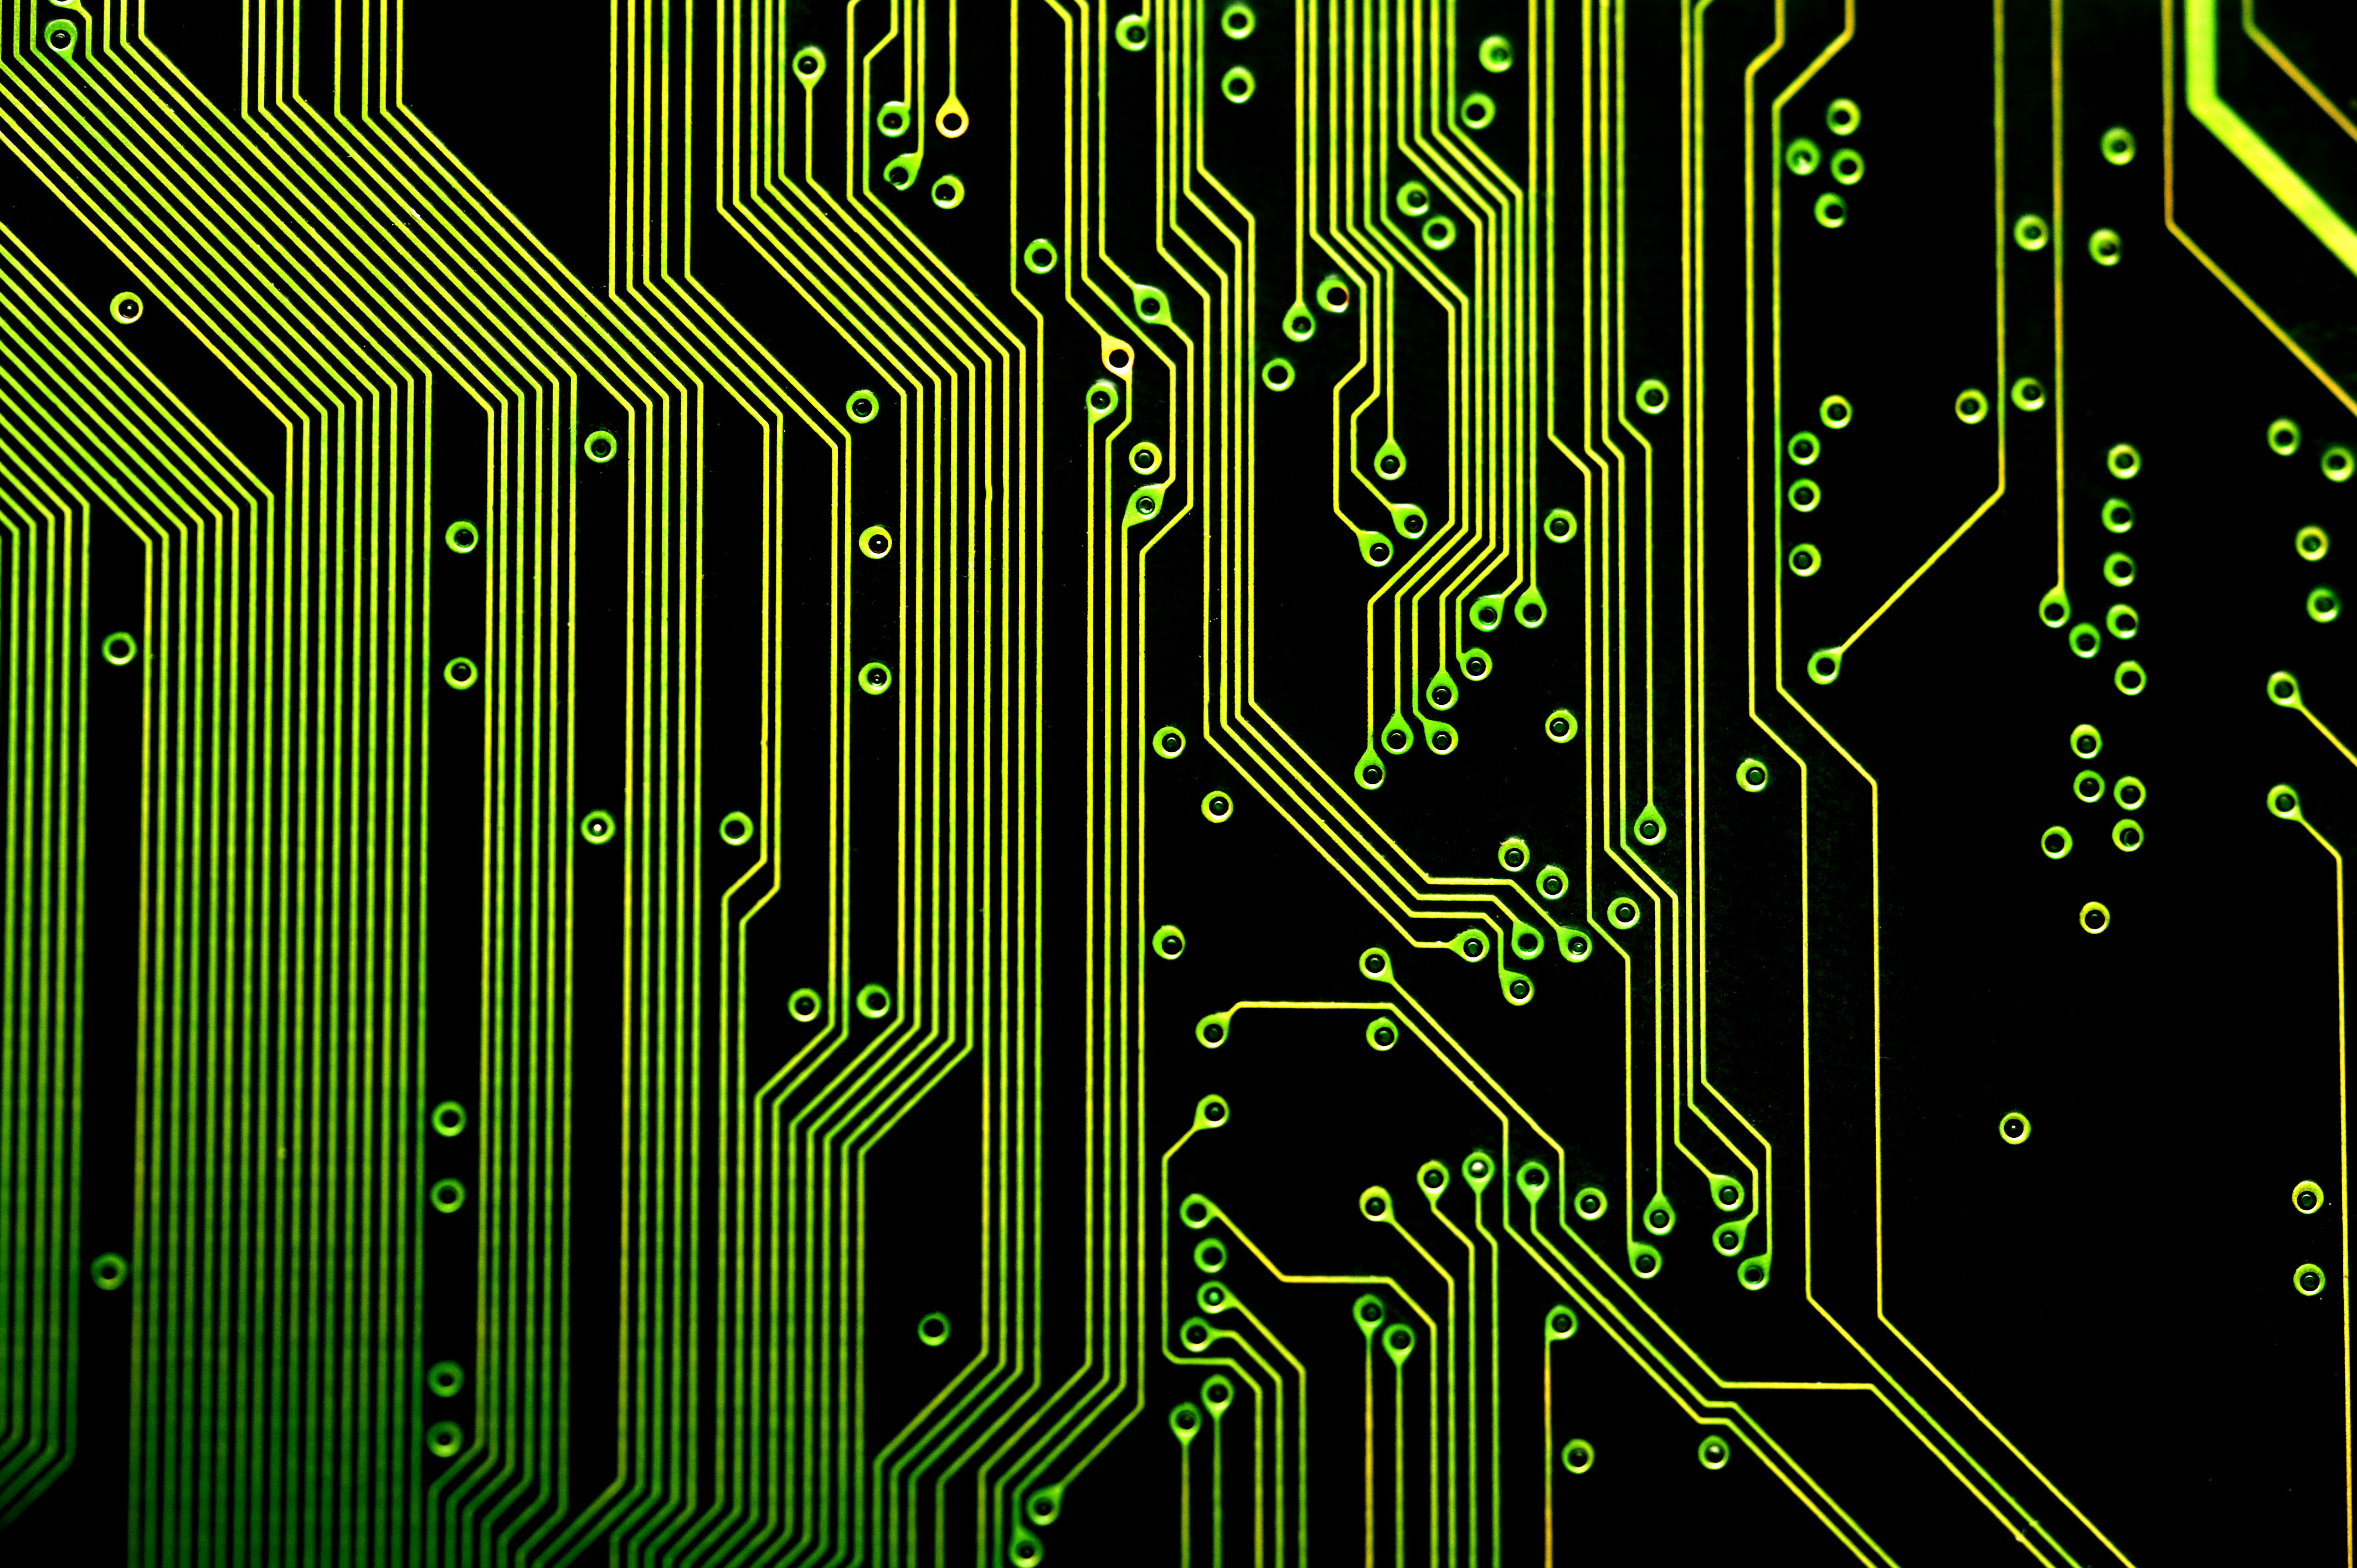 Screen Printed Circuits : Electronic circuit board flickr photo sharing